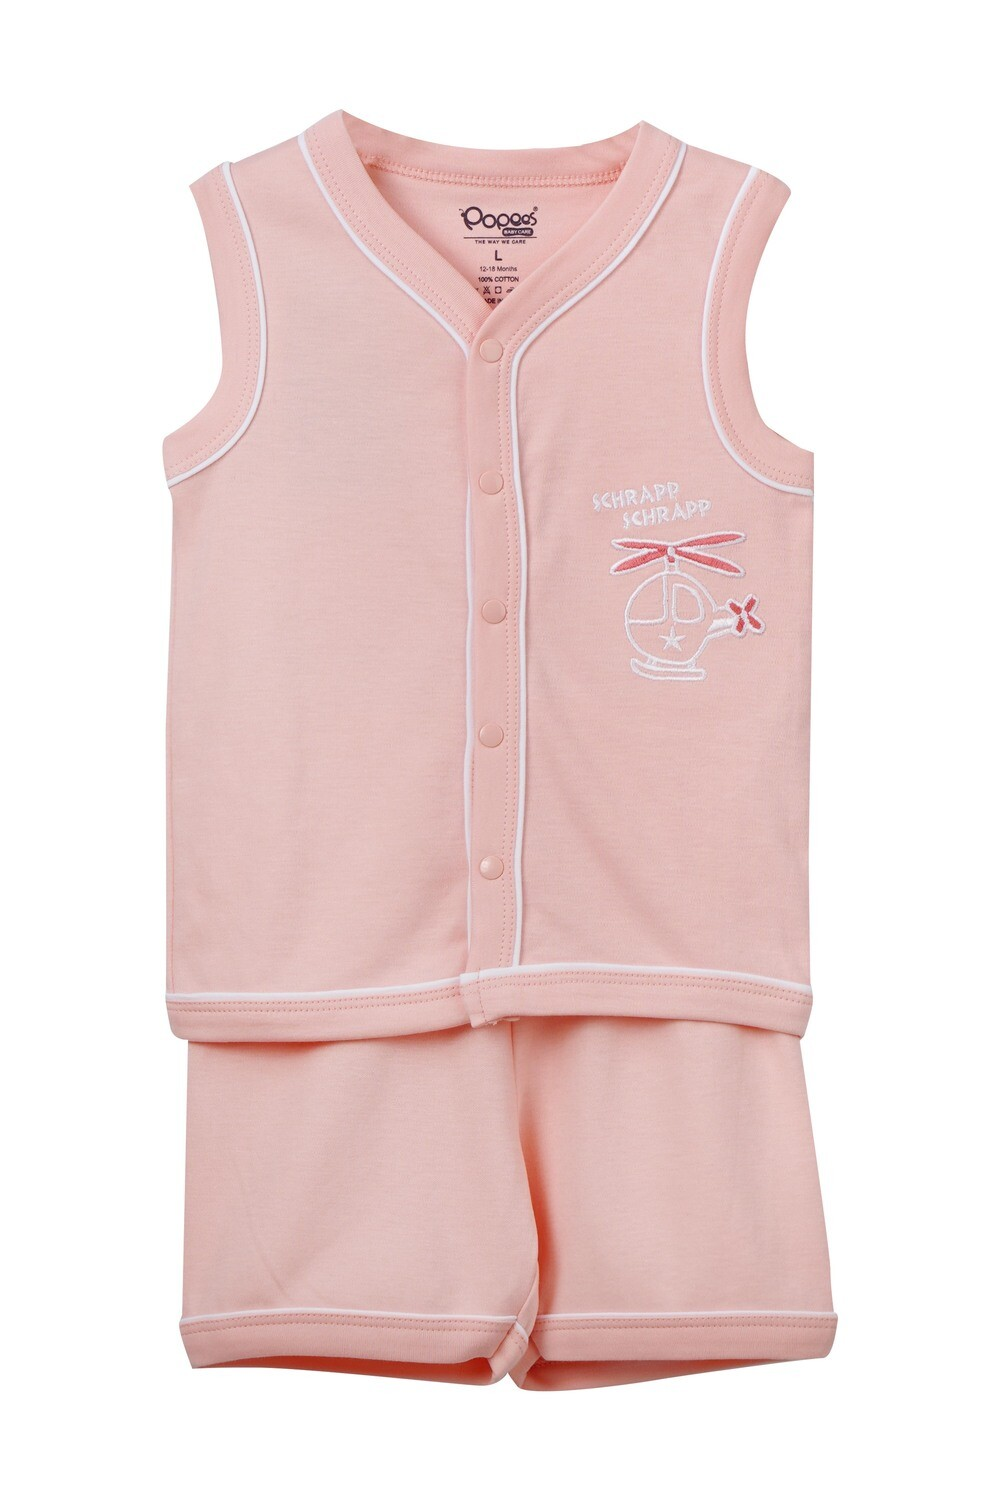 EIDER Pink Top & Trouser Sleeveless Front Open Cotton Interlock for Baby BOYS during Summer